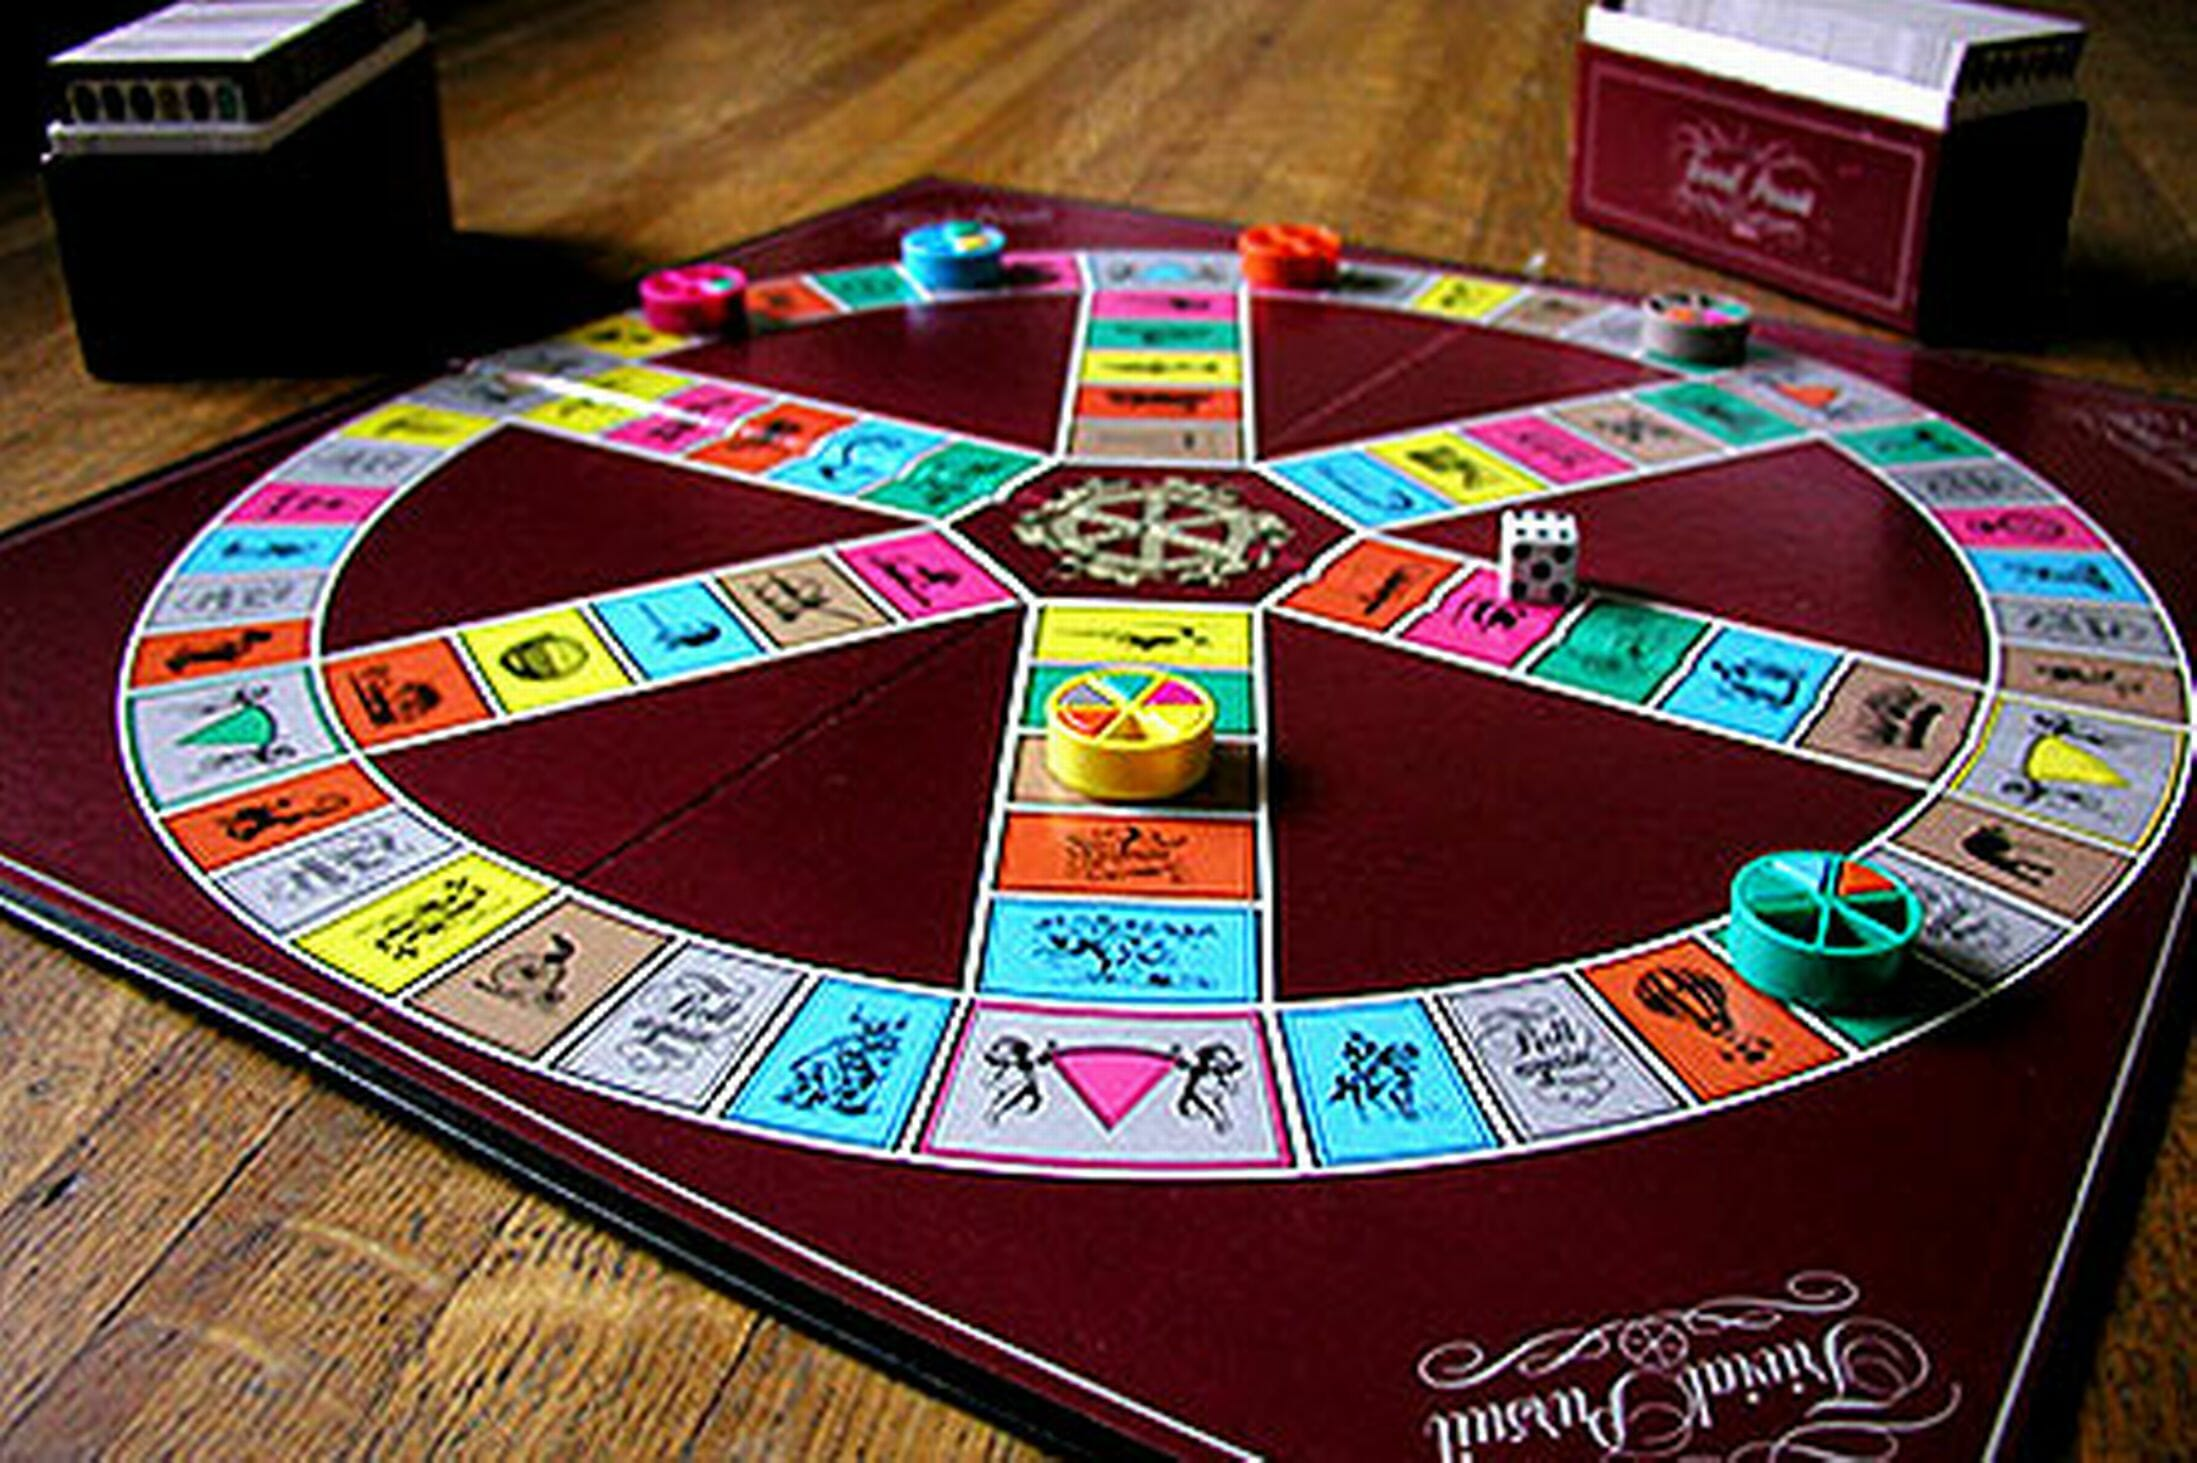 50 Greatest Card Games And Board Games Of All Time